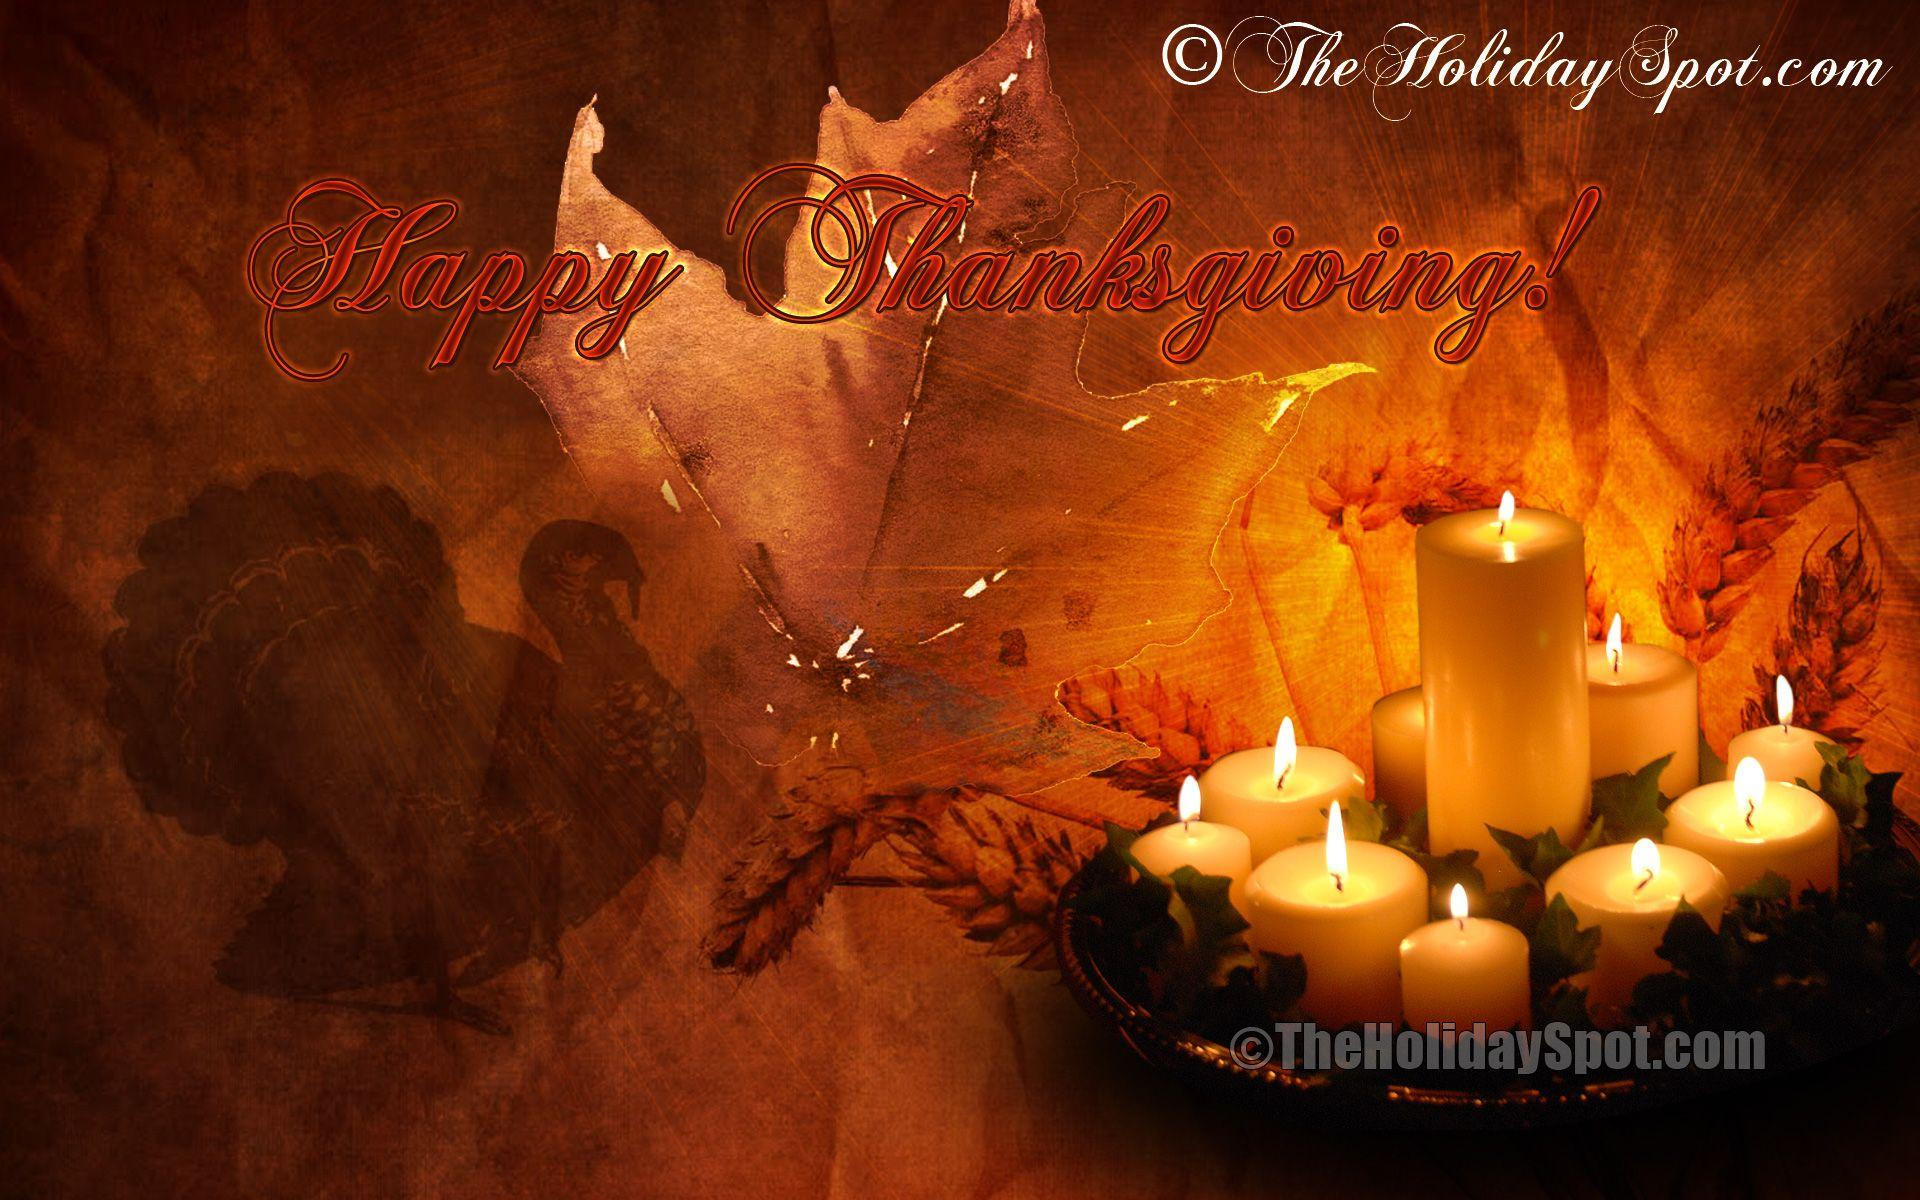 Thanksgiving Animated Wallpapers | Thanksgiving Day | Pinterest ...